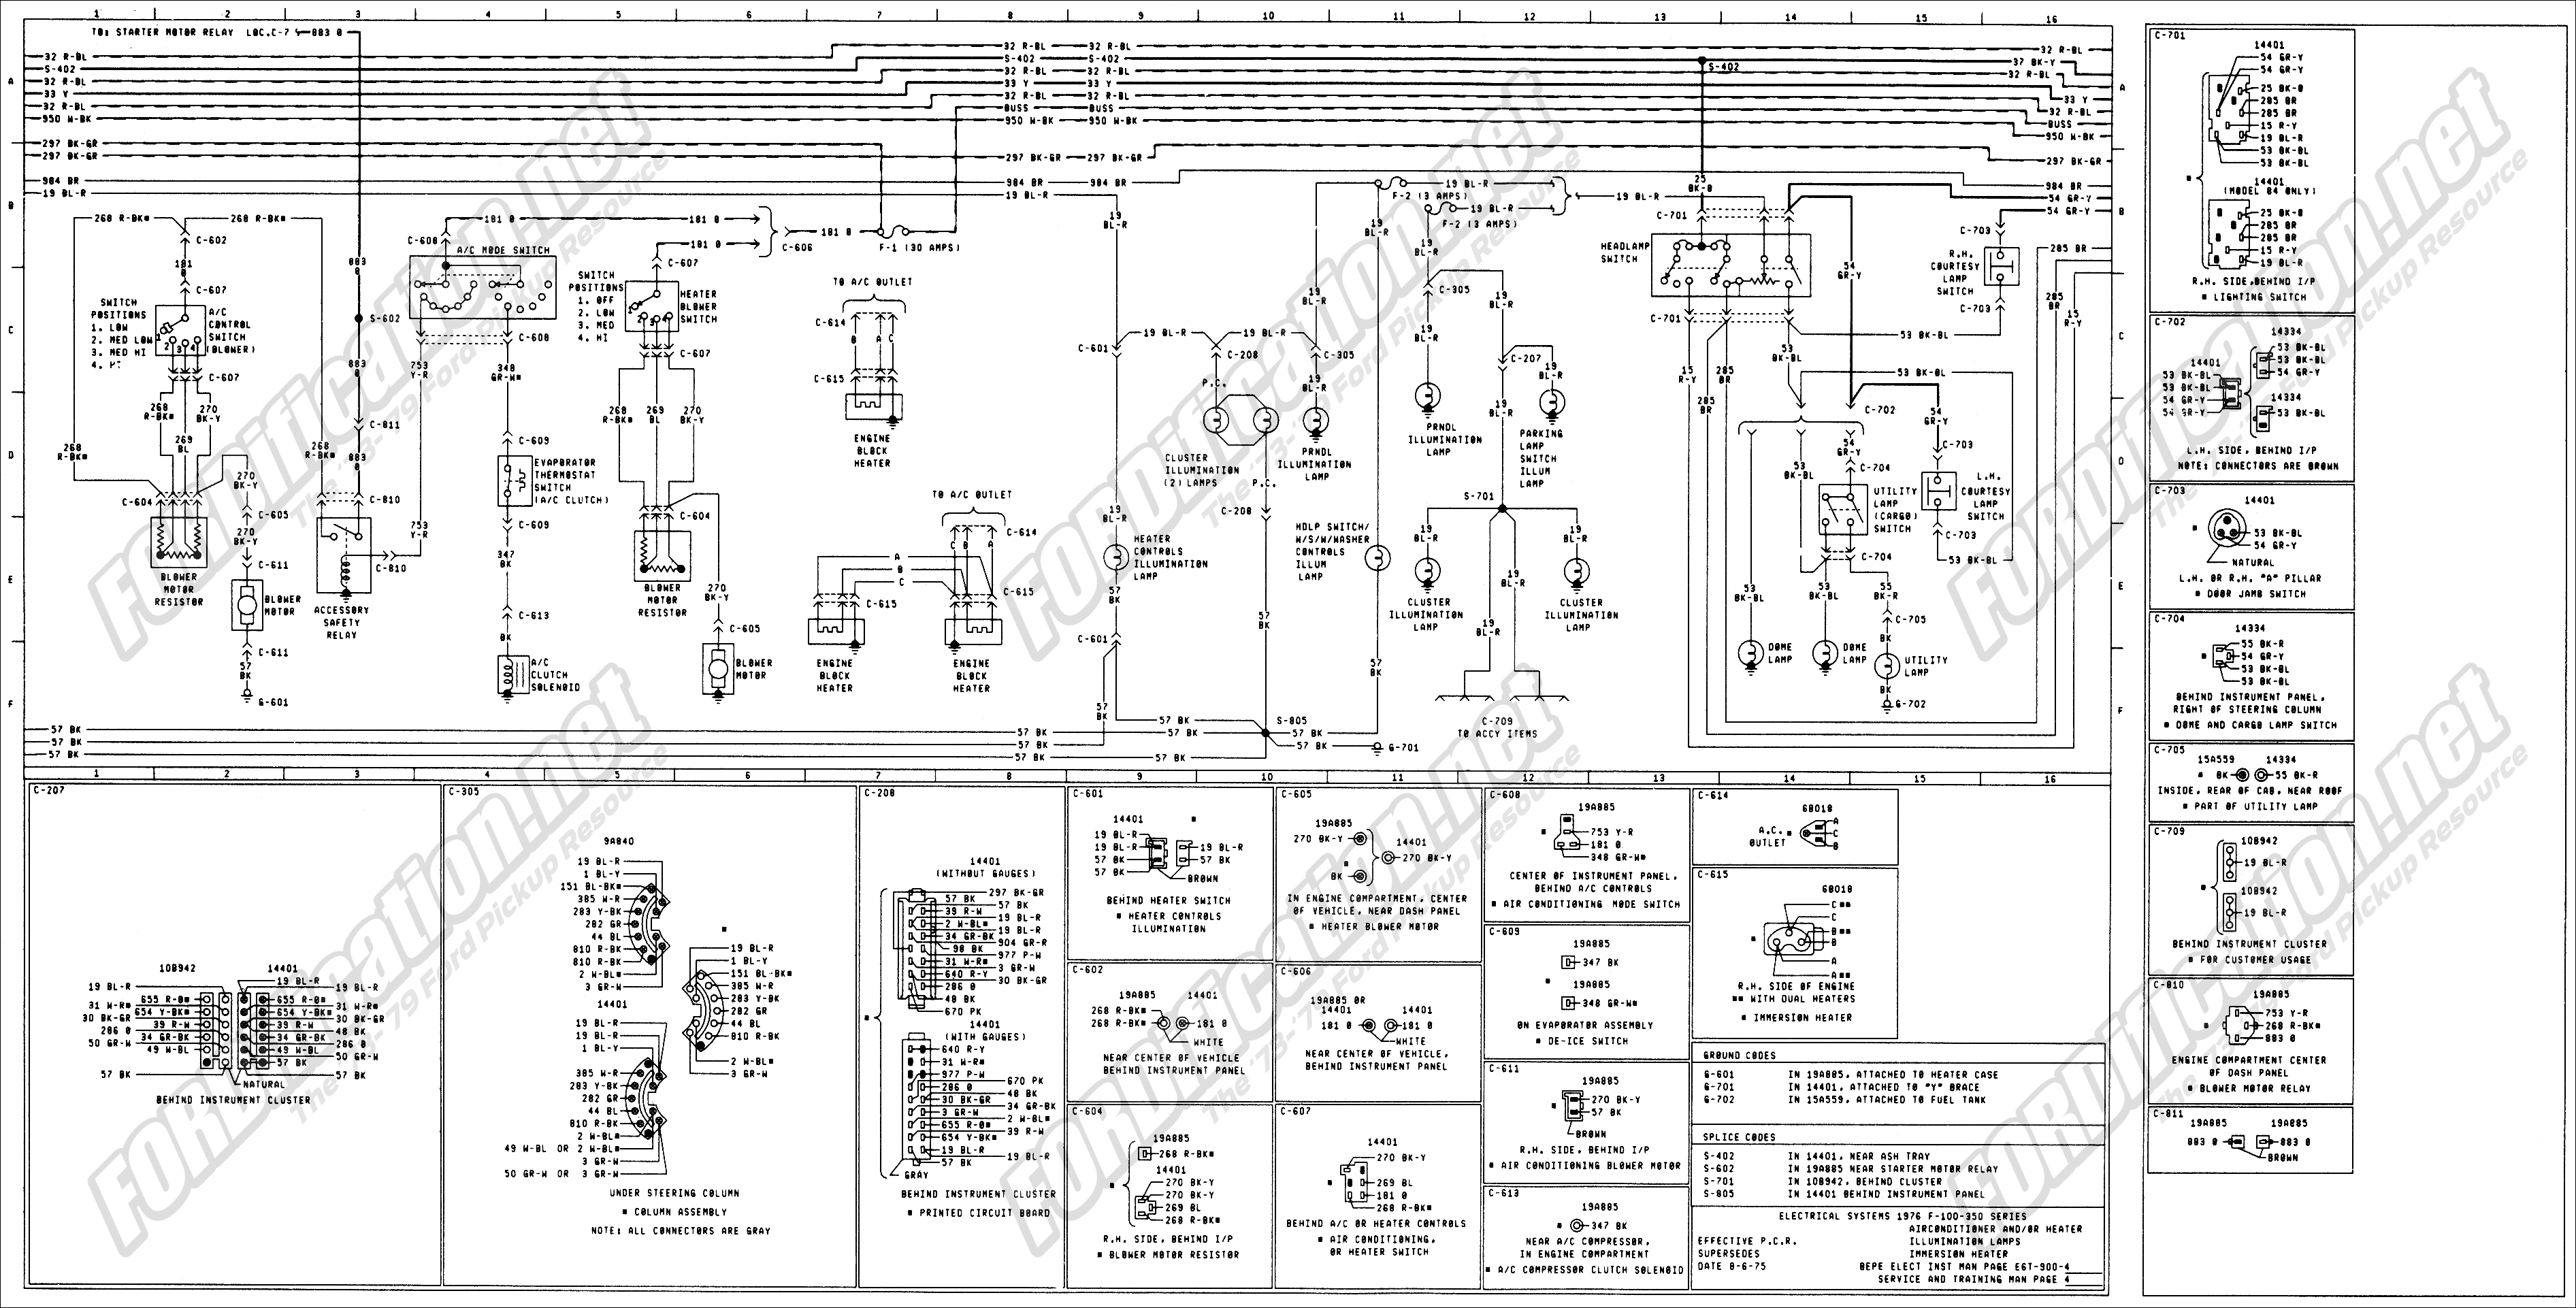 1973 1979 Ford Truck Wiring Diagrams Schematics 2000 Gmc Sierra Diagram P